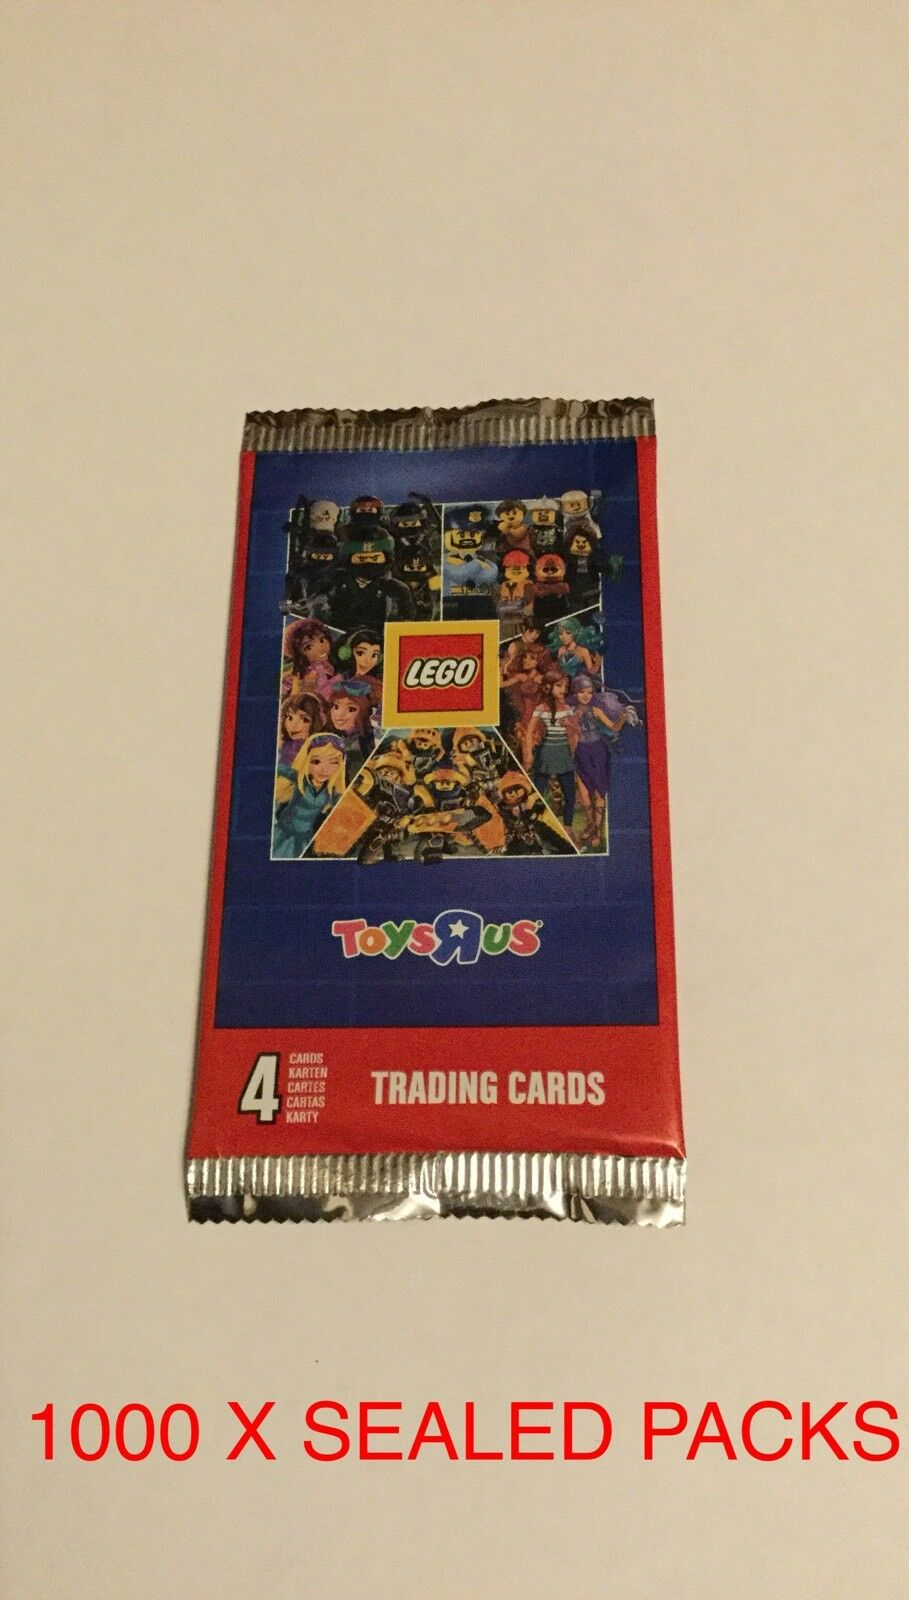 1000 X PACKS OF LEGO TOYS R US TRADING CARDS, SEALED. BE QUICK